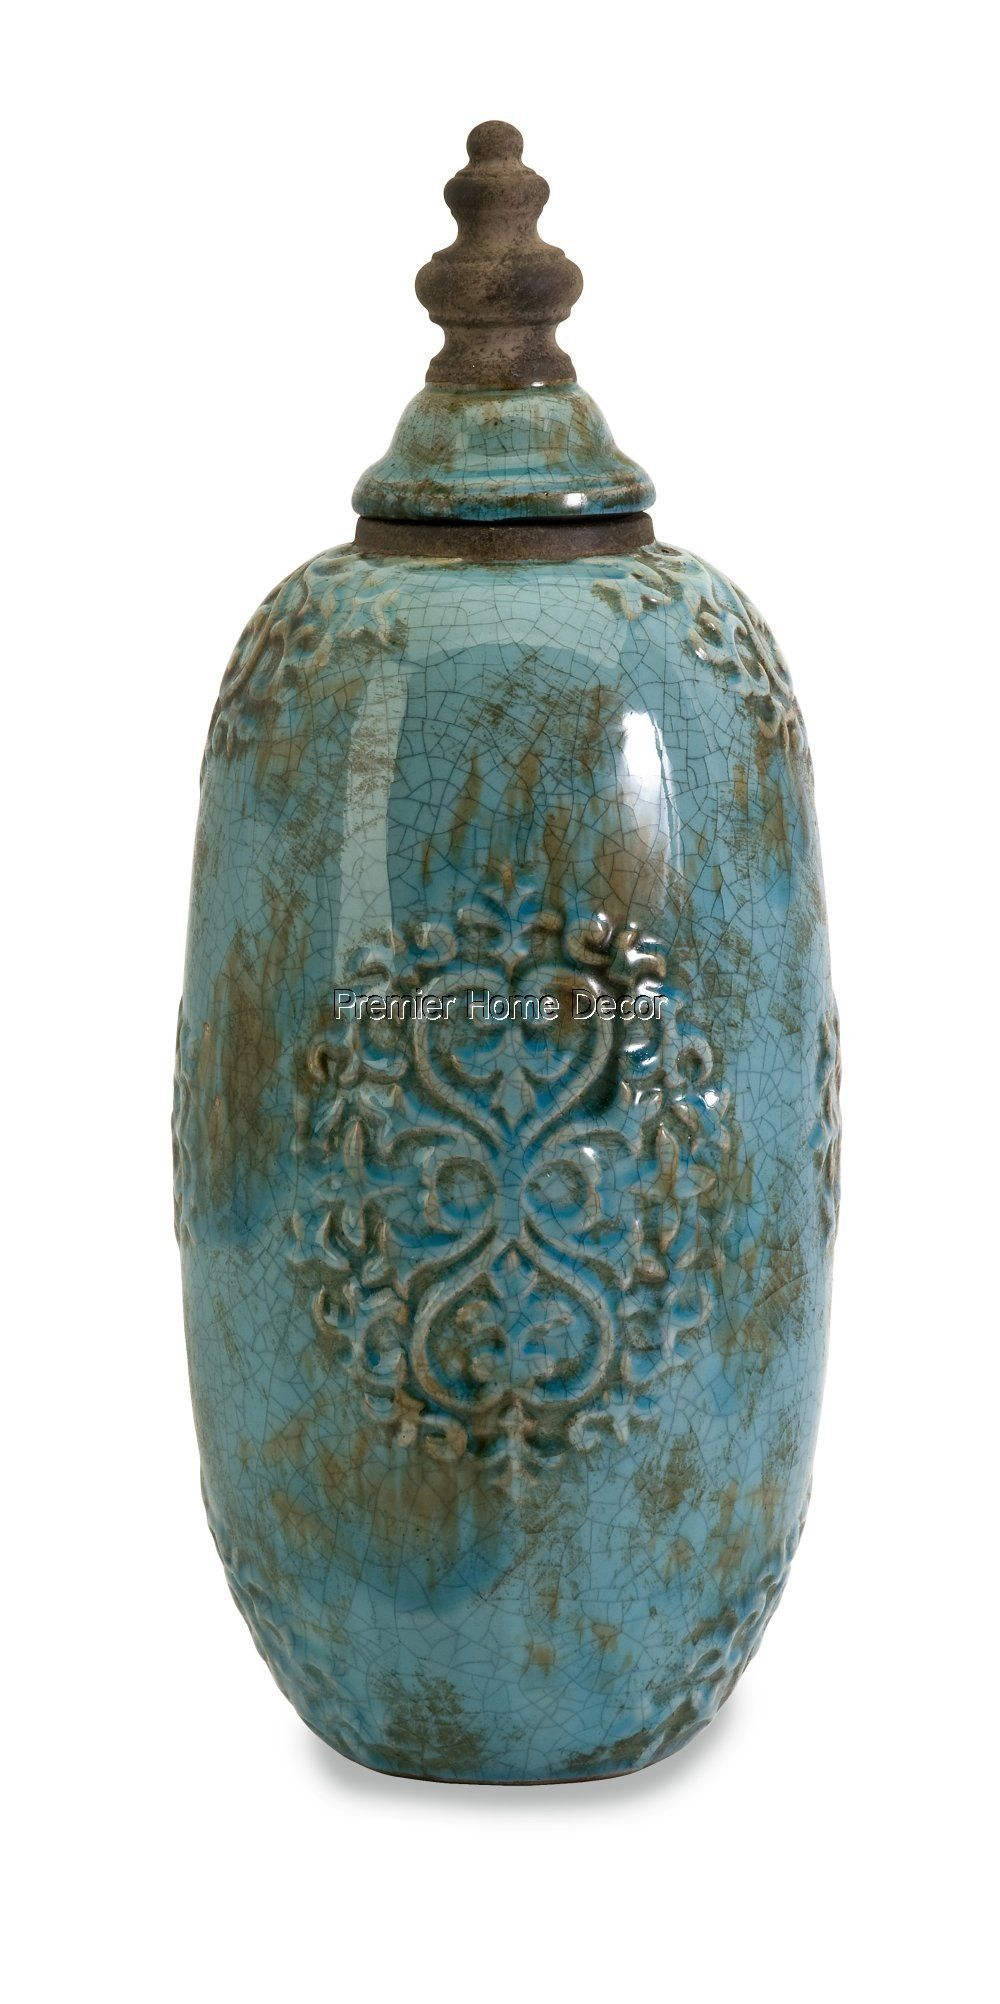 Decorative Urns With Lids Old World Tuscan Ceramic Urn Jar With Lid Rustic Crackled Finish